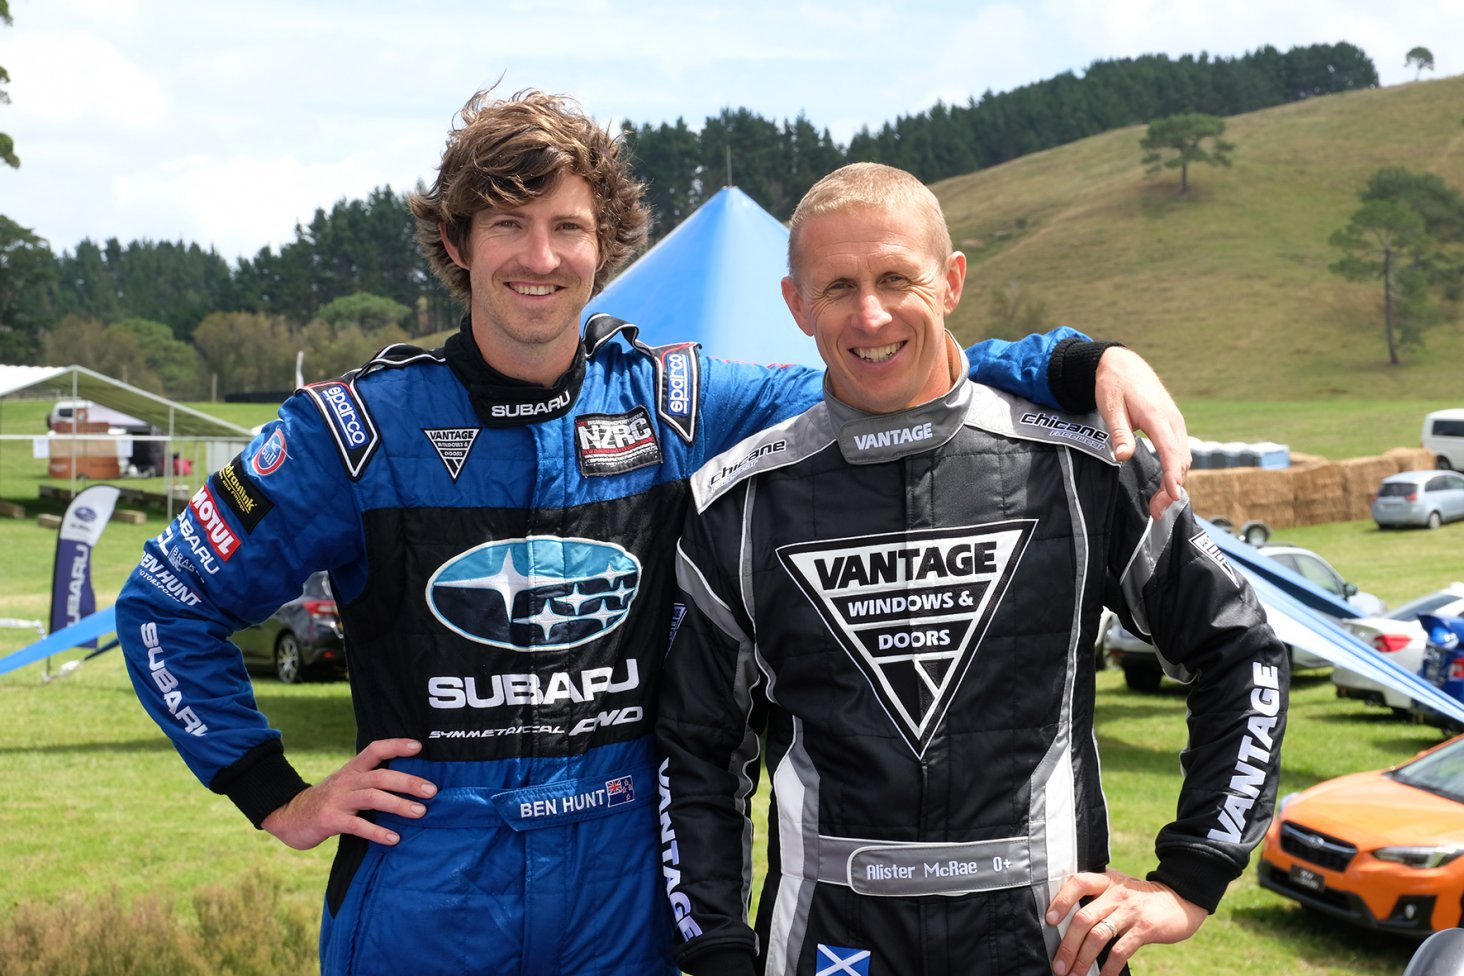 Subaru brand ambassador Ben Hunt and rally legend Alister McRae are both driving Subarus at the 2019 Leadfoot Festival.